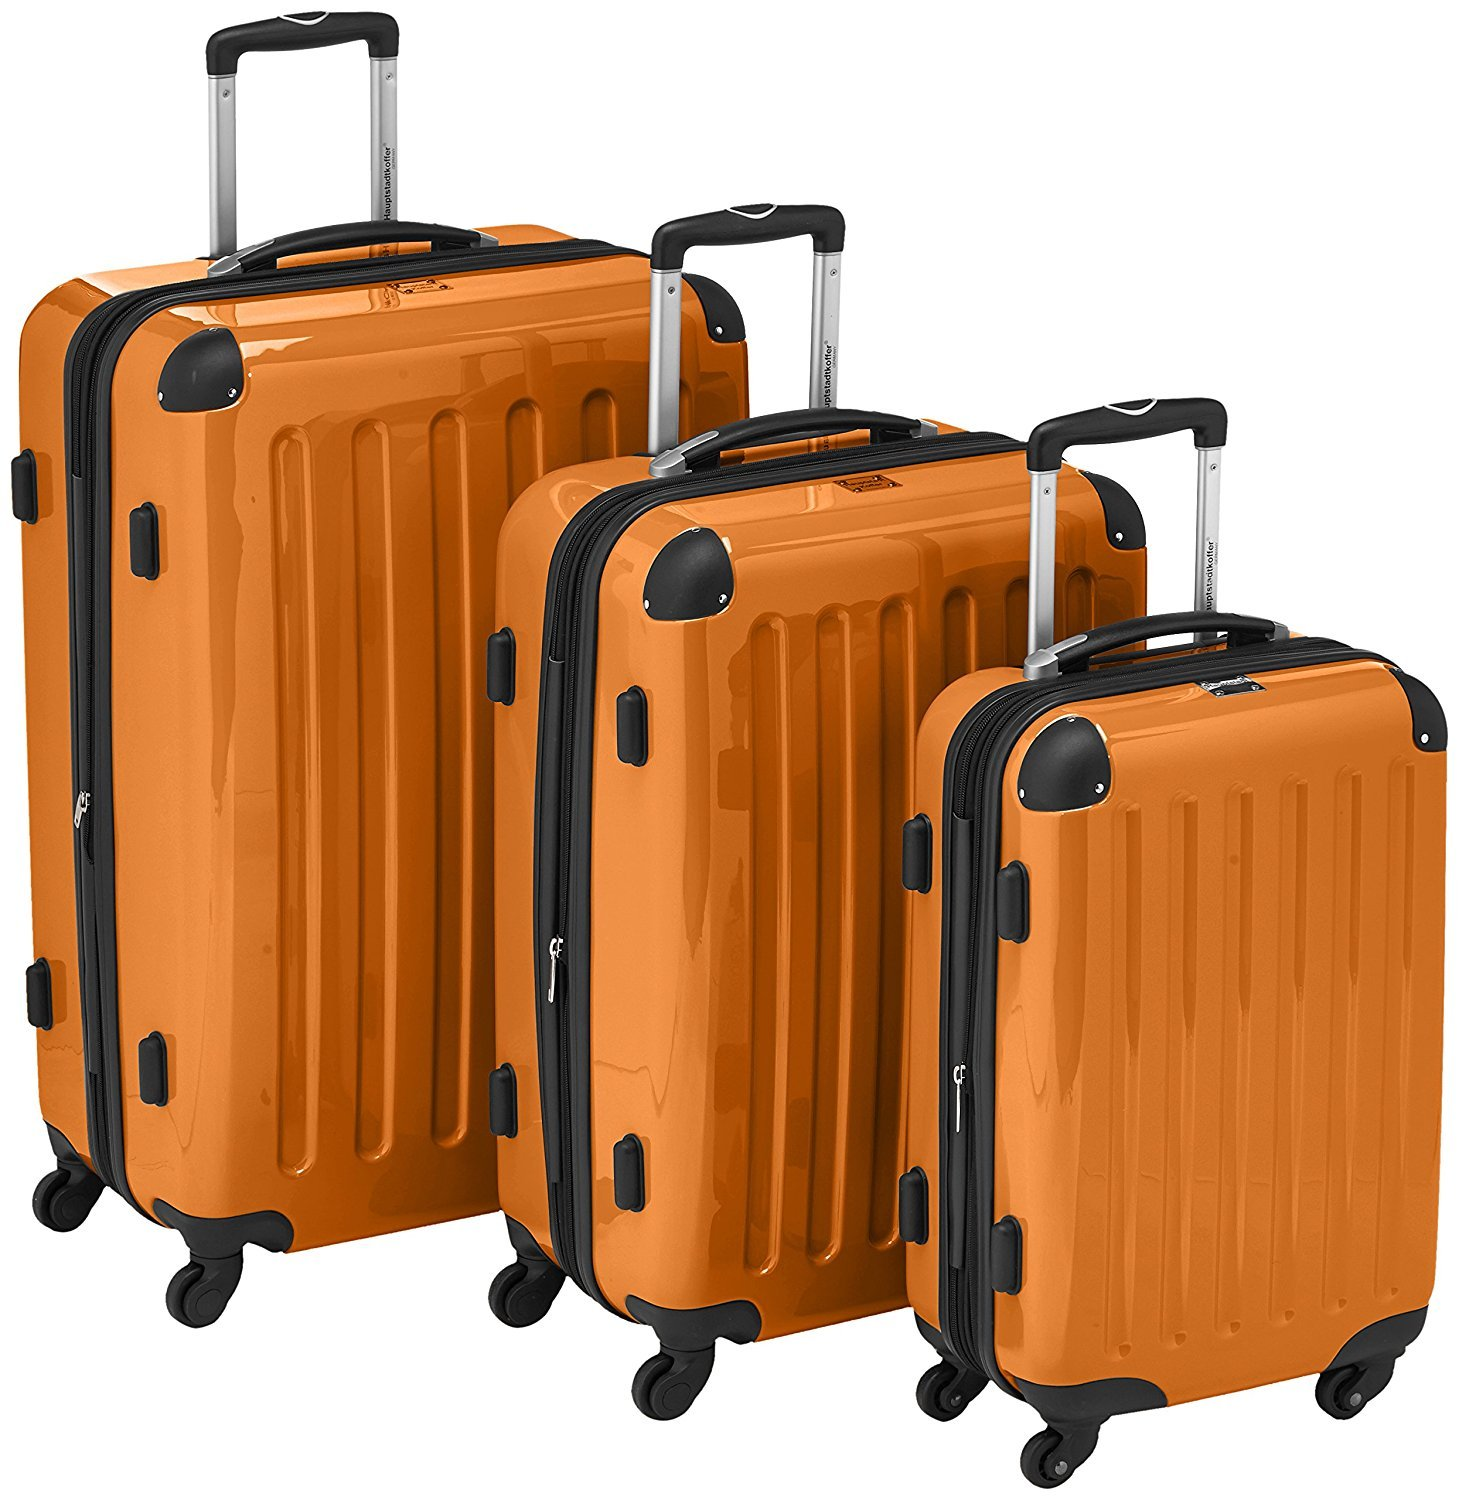 Best UK Luggage Reviews In 2017| Suitcase,Duffel & Hand Luggage